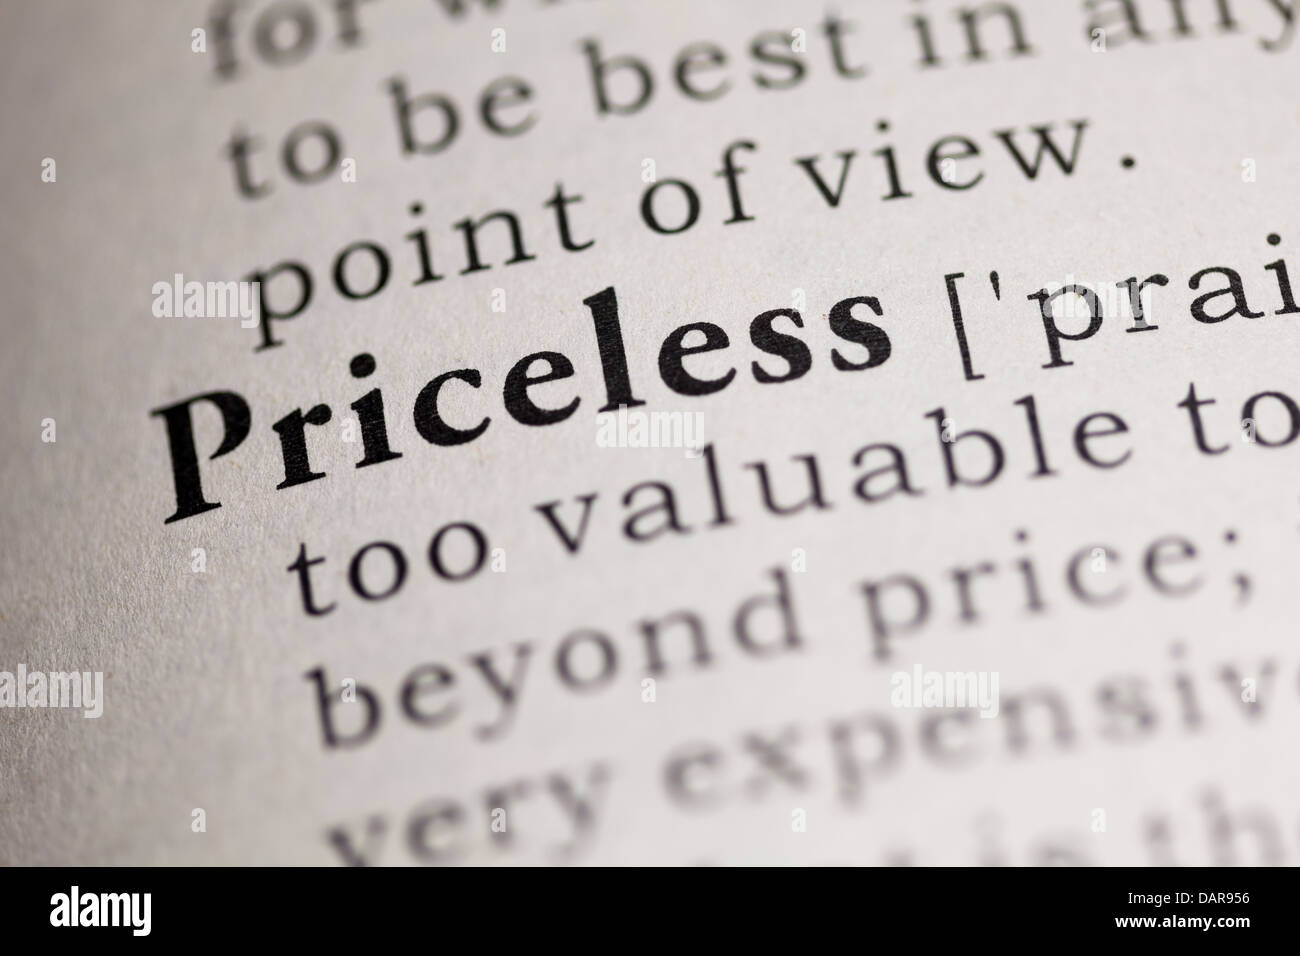 Fake Dictionary, Dictionary definition of the word Priceless. - Stock Image